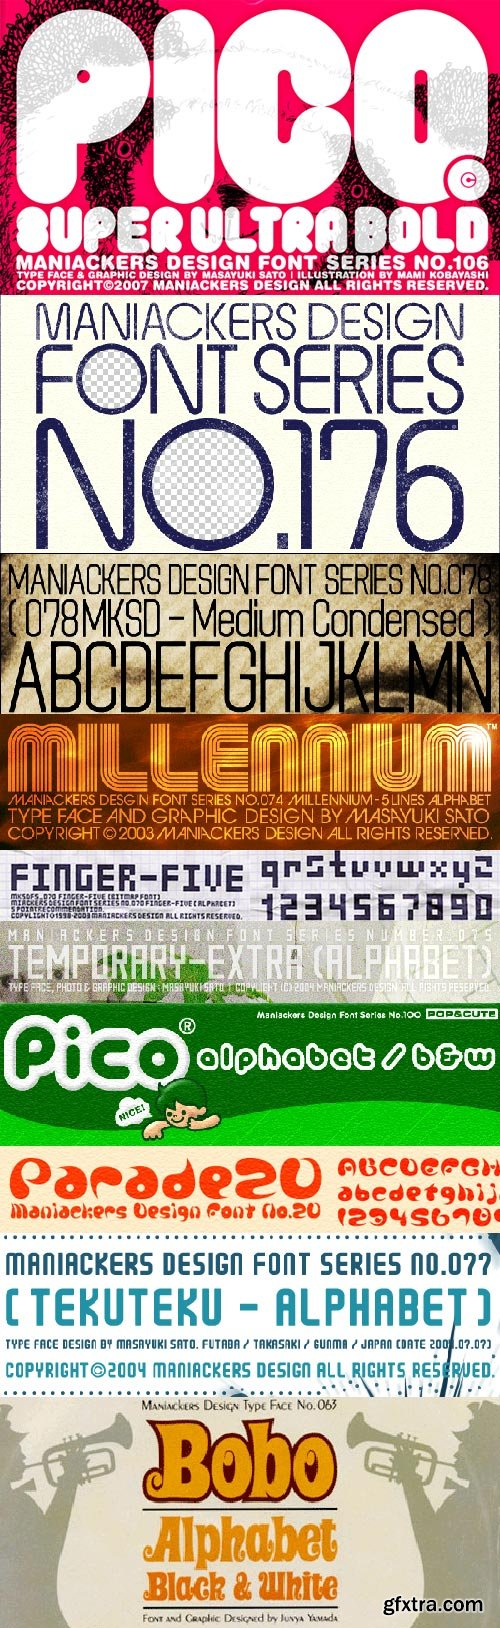 Maniackers Design Fonts Collection 107xTTF